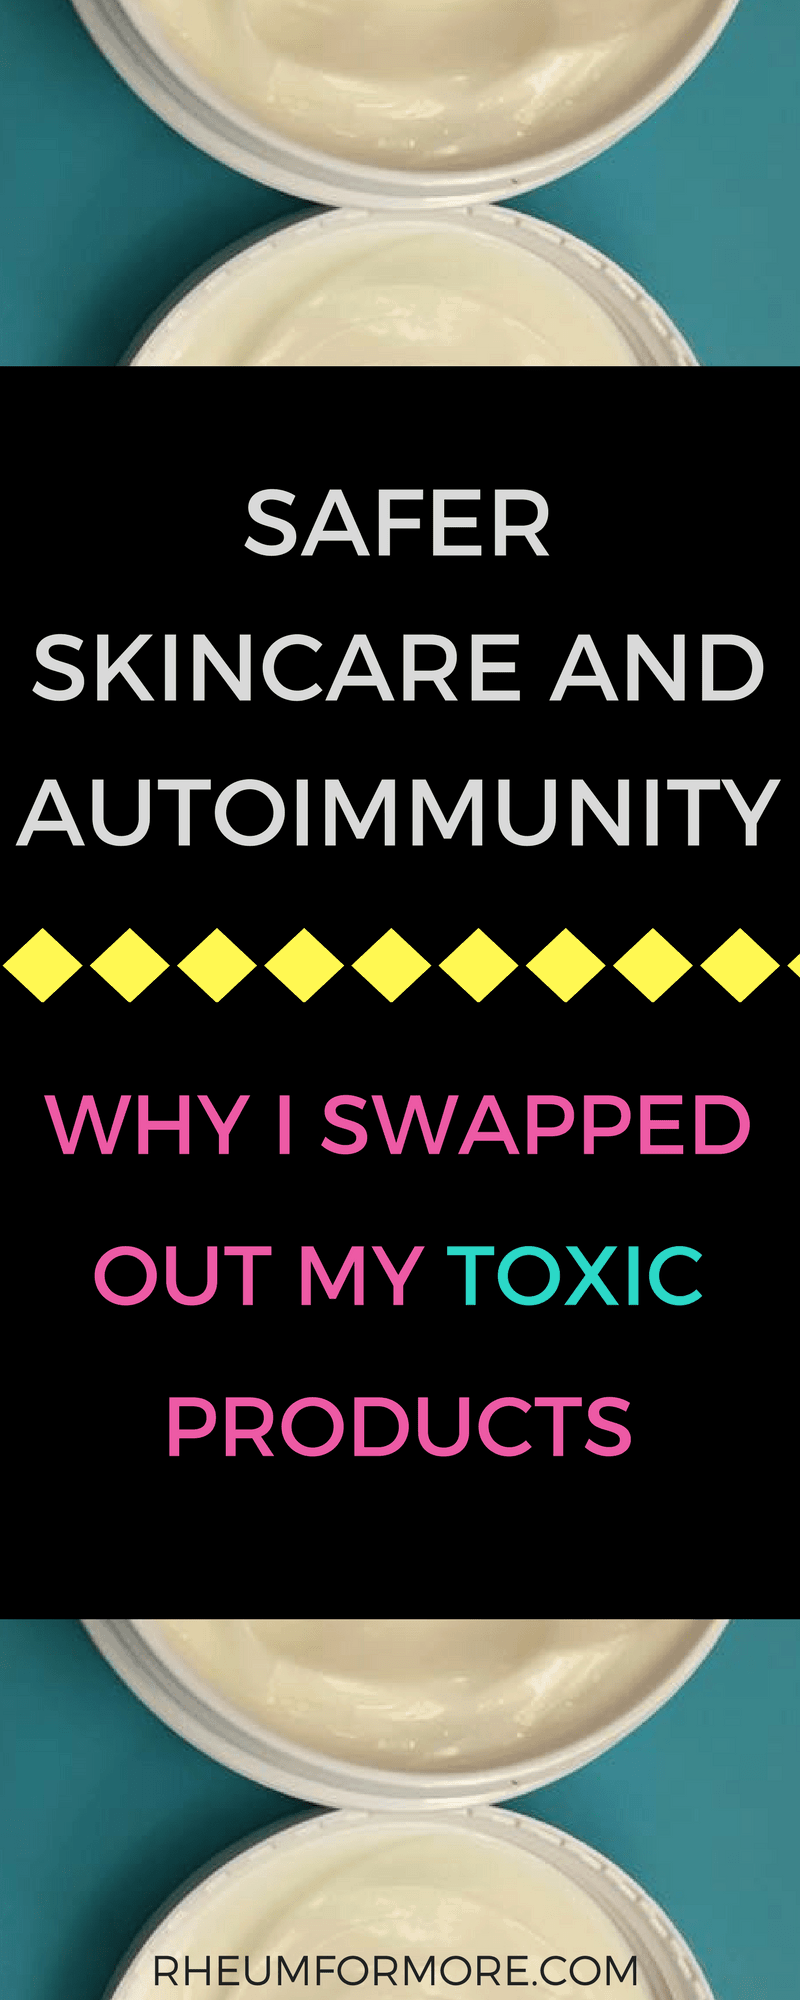 Swapping out toxic skincare products will greatly limit your exposure to the dangerous chemicals lurking in your family's personal care products and could improve your autoimmune symptoms. #skincare #naturalbeauty #beauty #saferskincare